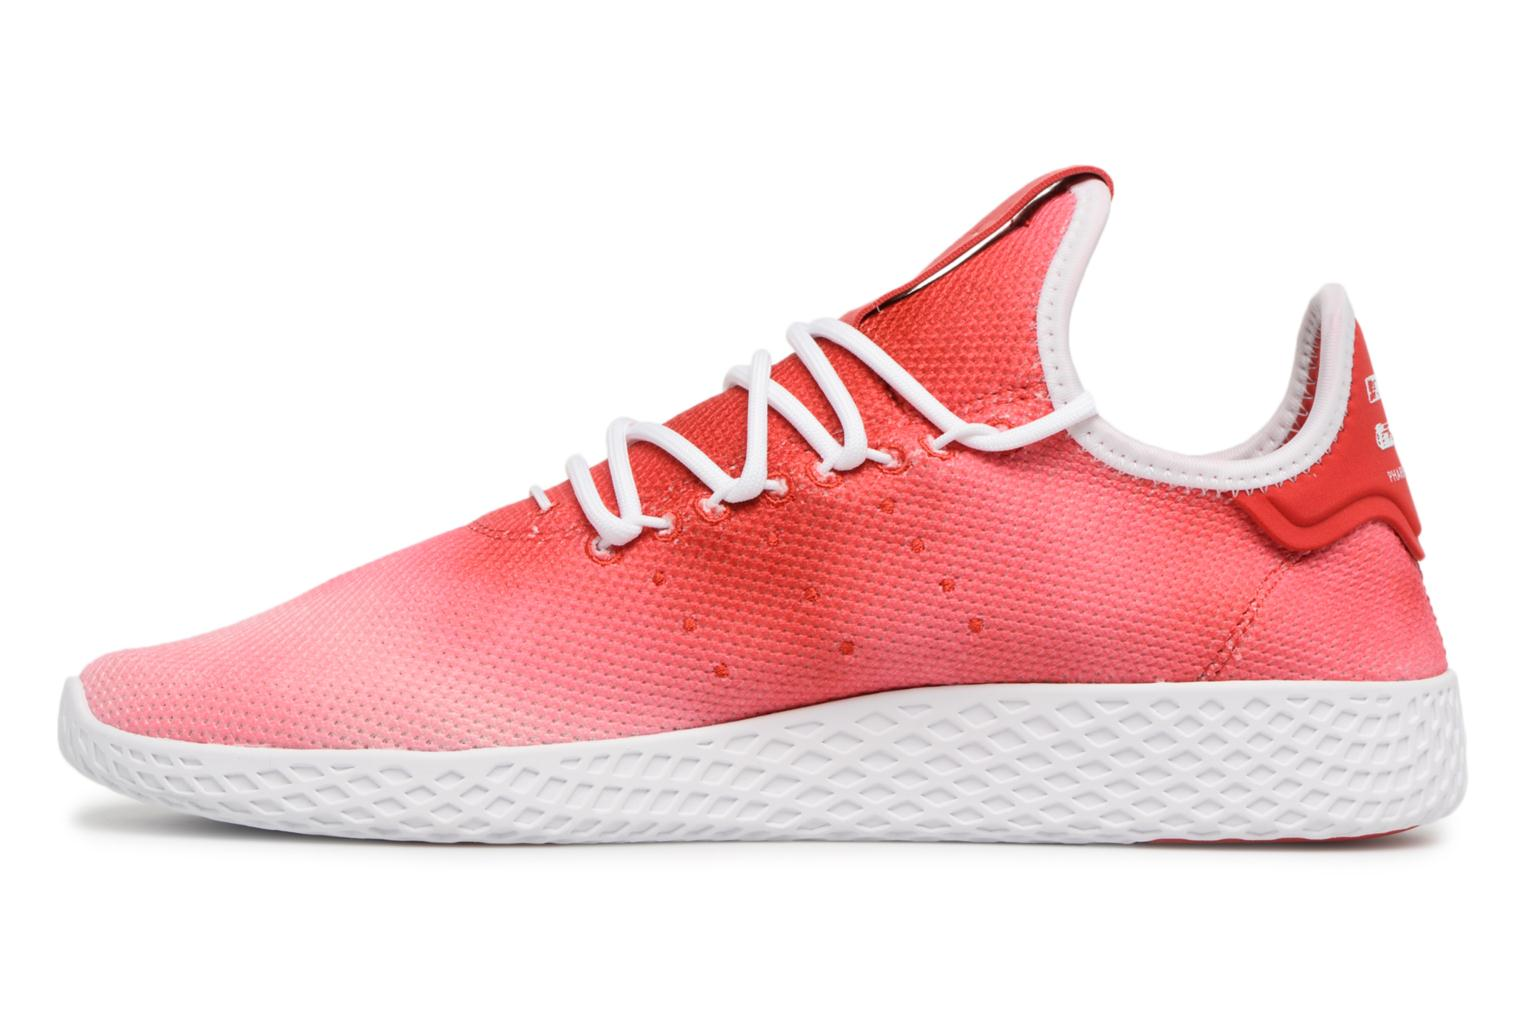 Ecarla/Ftwbla/Ftwbla Adidas Originals Pharrell Williams Hu Holi Tennis Hu (Rouge)